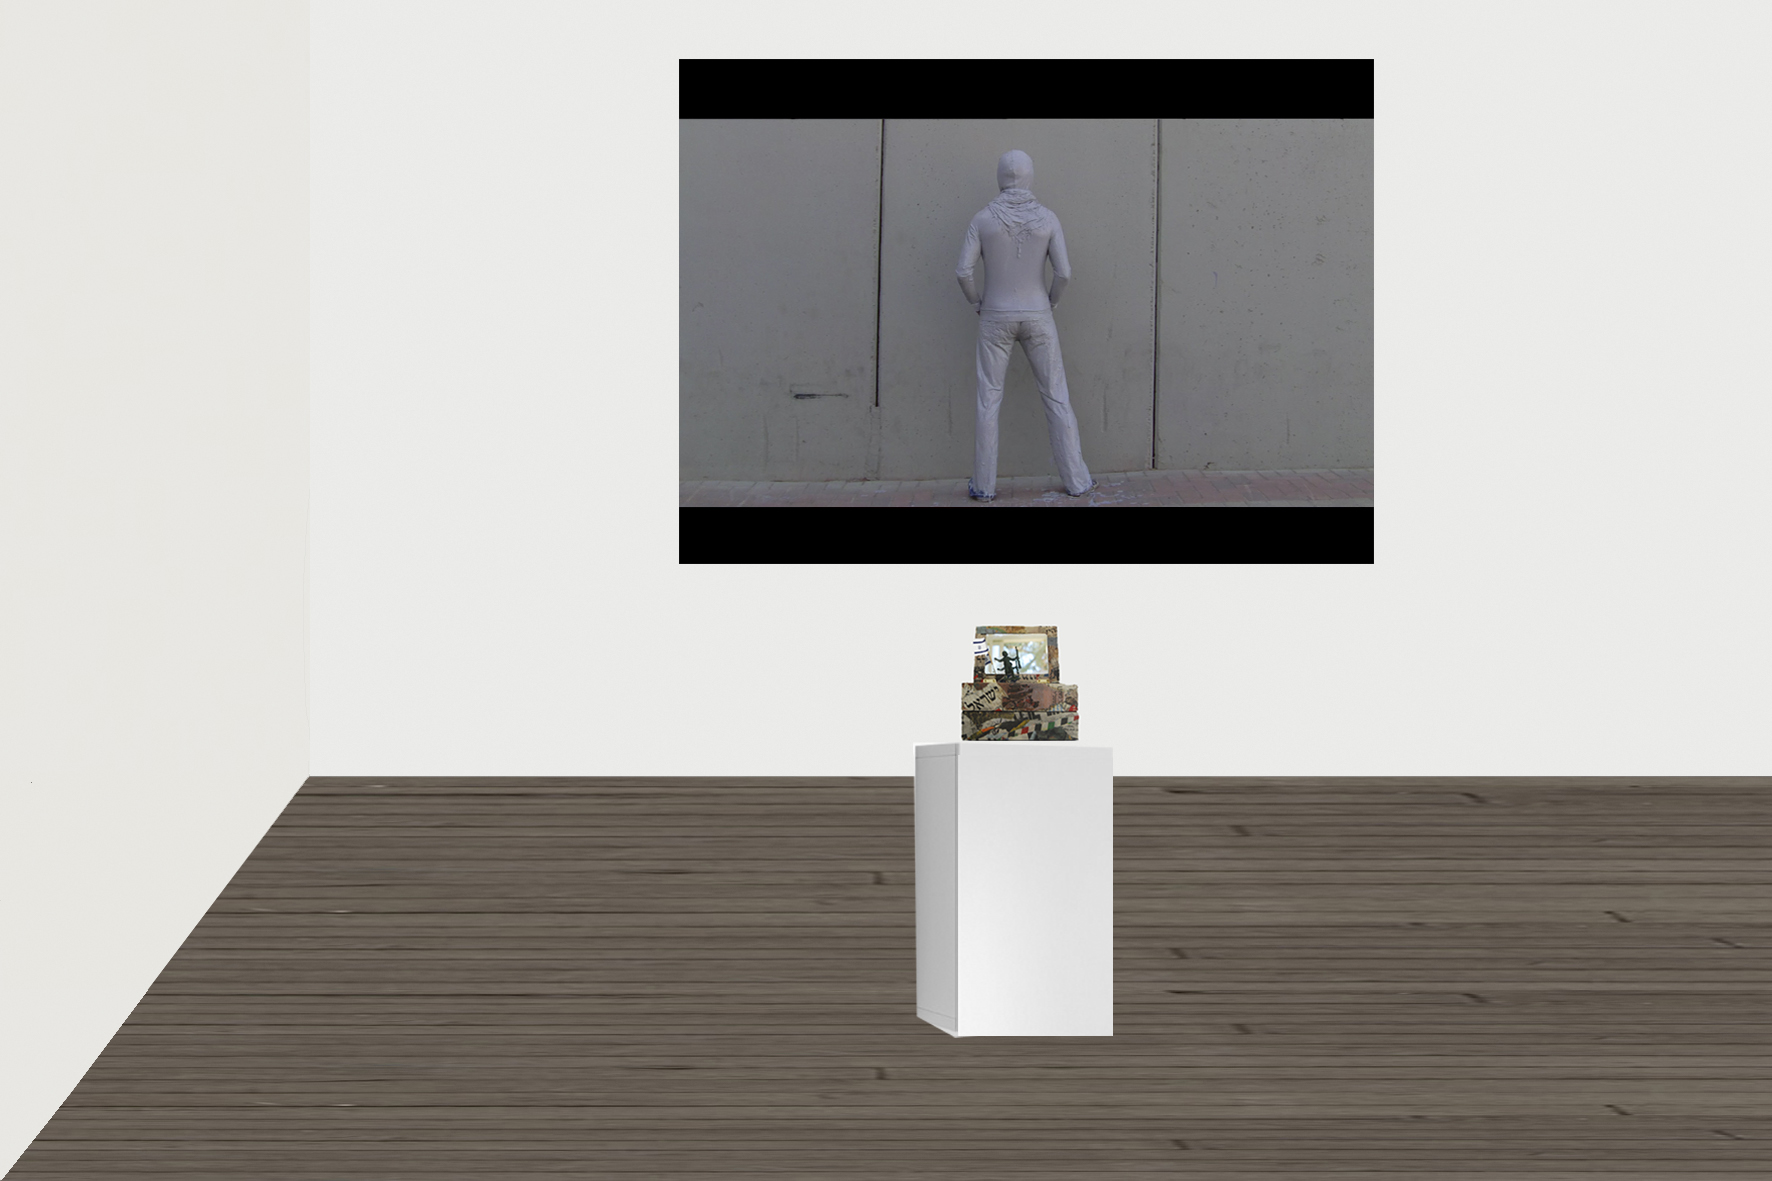 Walled-in, Boxed-in, 2011